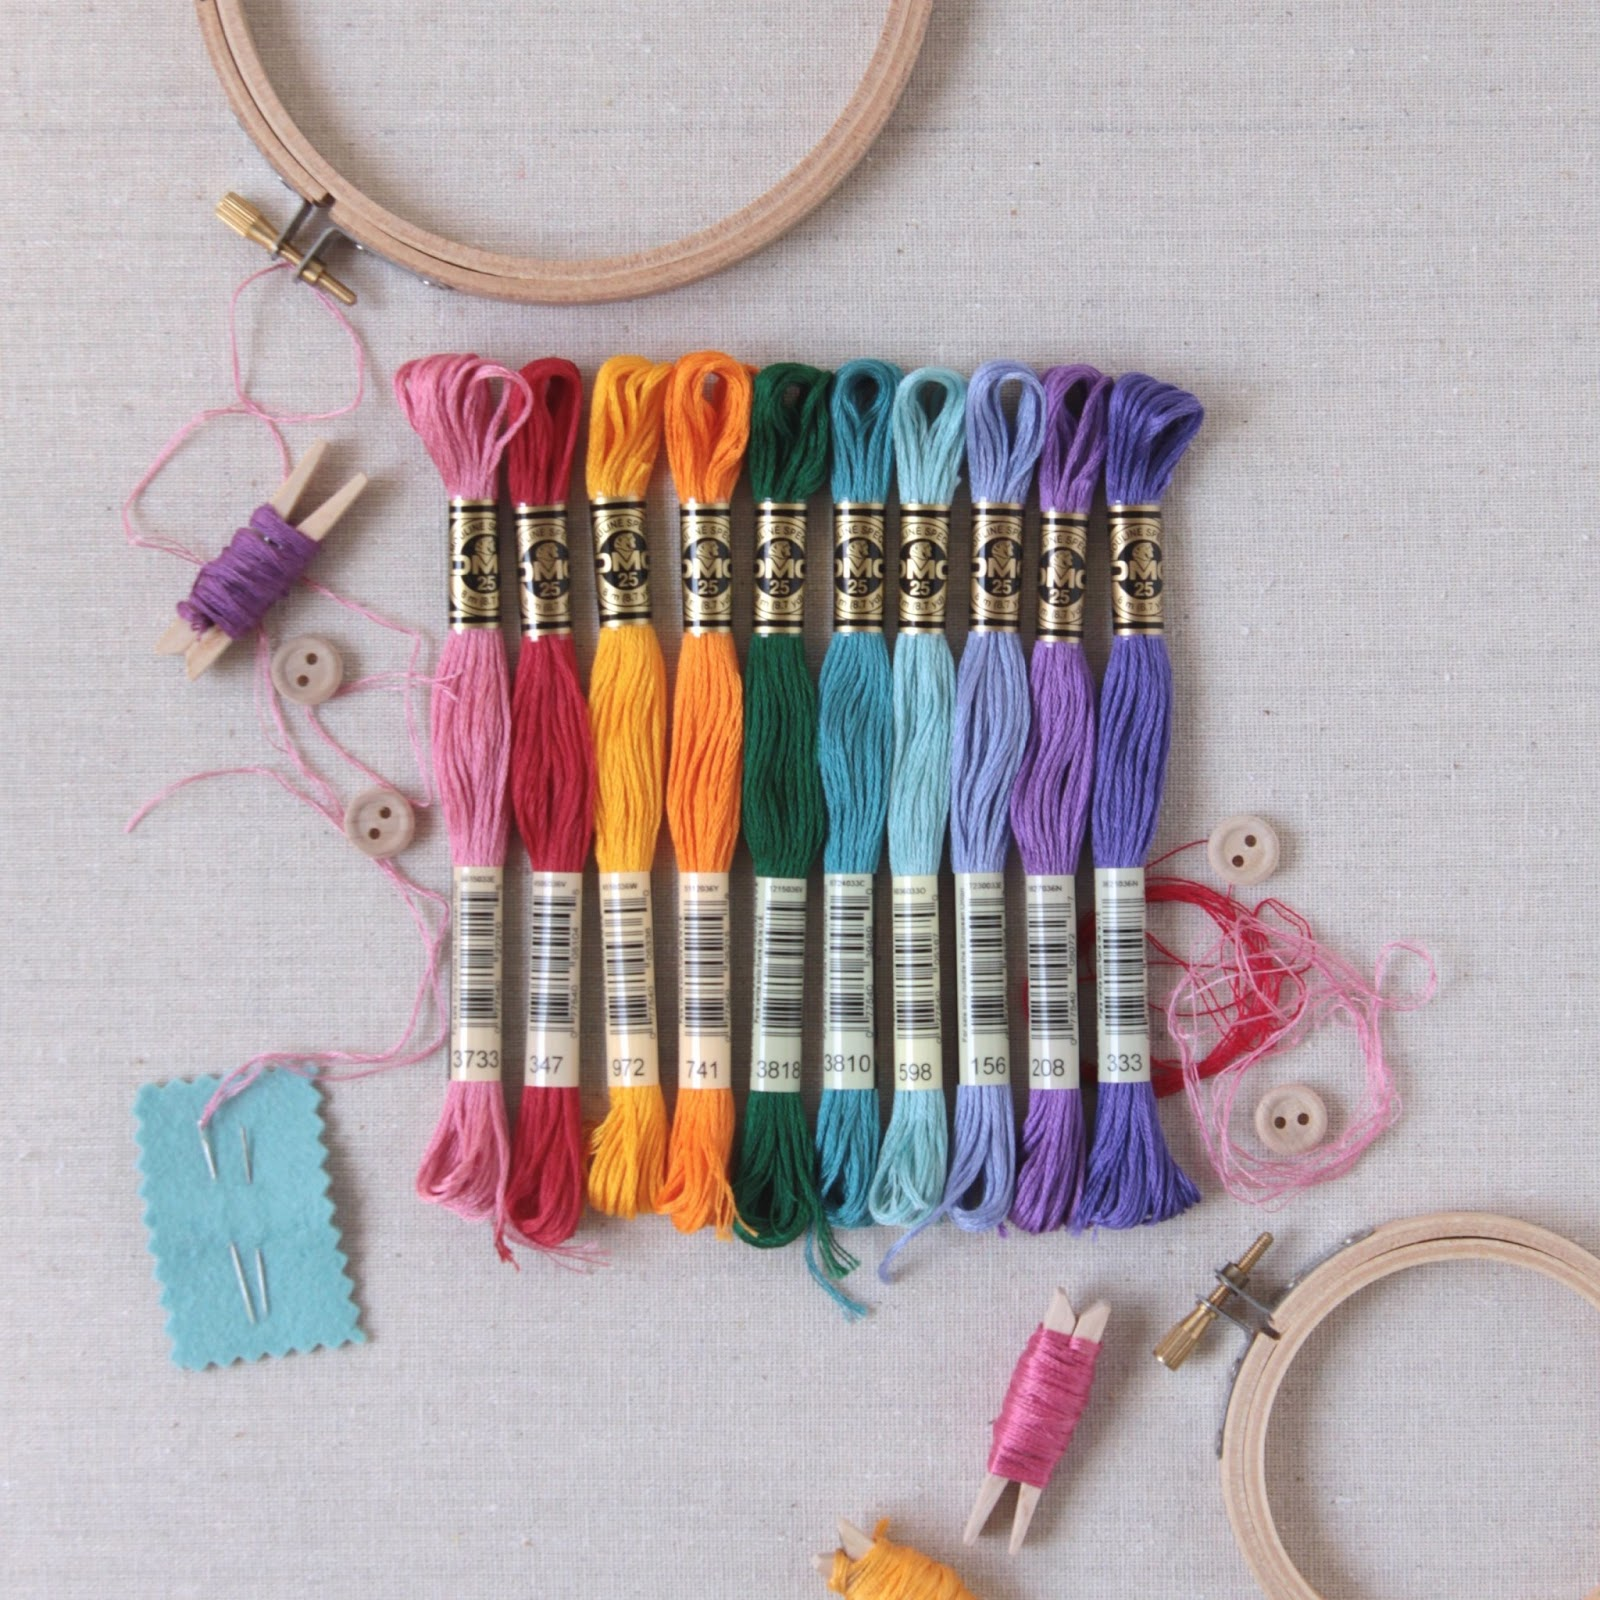 How to Choose Embroidery Floss